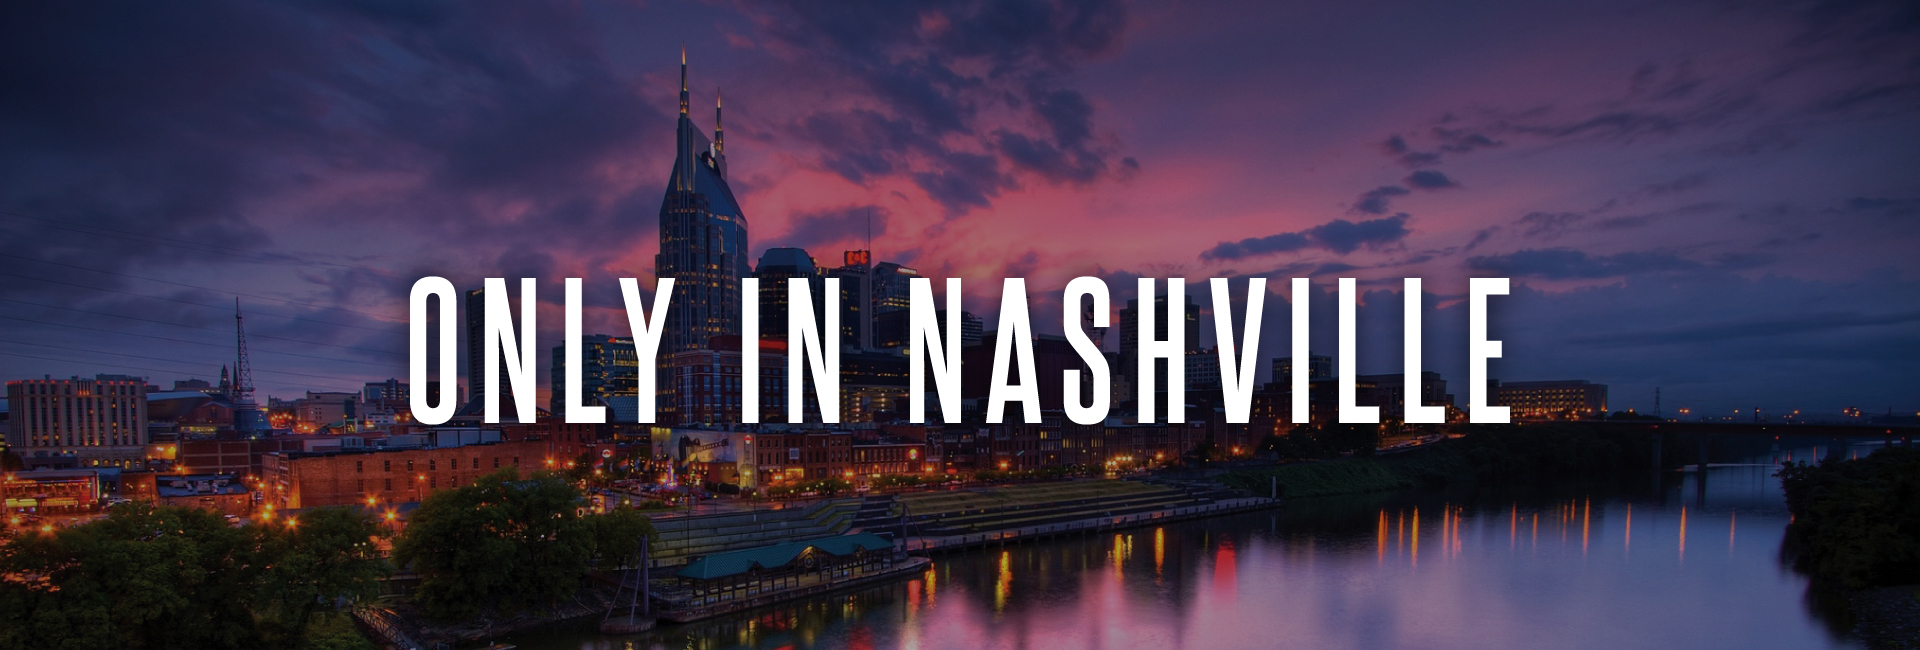 Resources | Only in Nashville